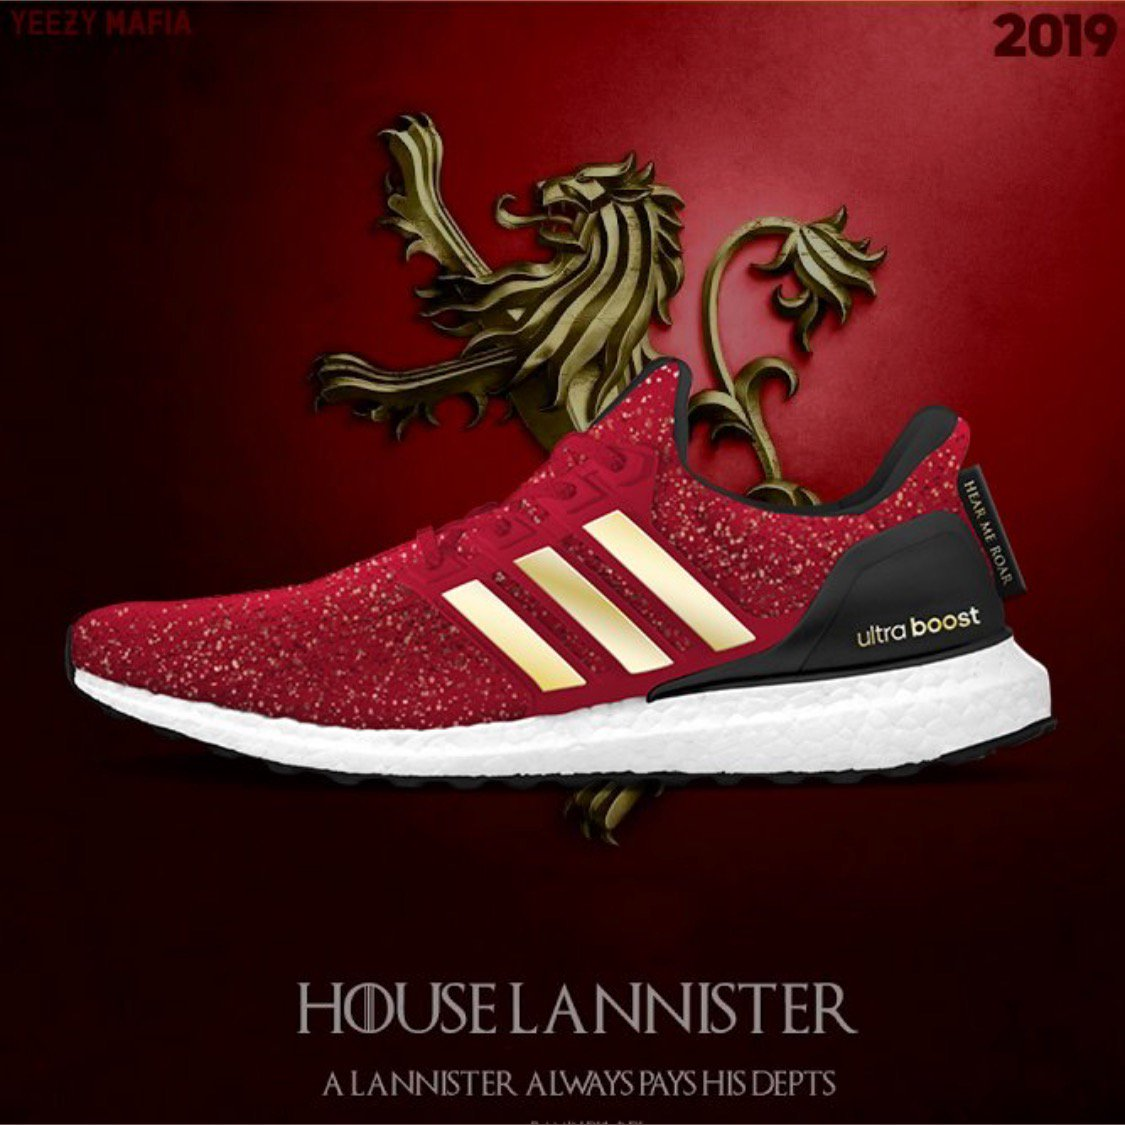 9fffeb201 These Game of Thrones-themed shoes from Adidas are EPIC! 👀 🔥 (via   theyeezymafia)pic.twitter.com xj0SkBSfNA. 4 43 PM - 7 Jul 2018